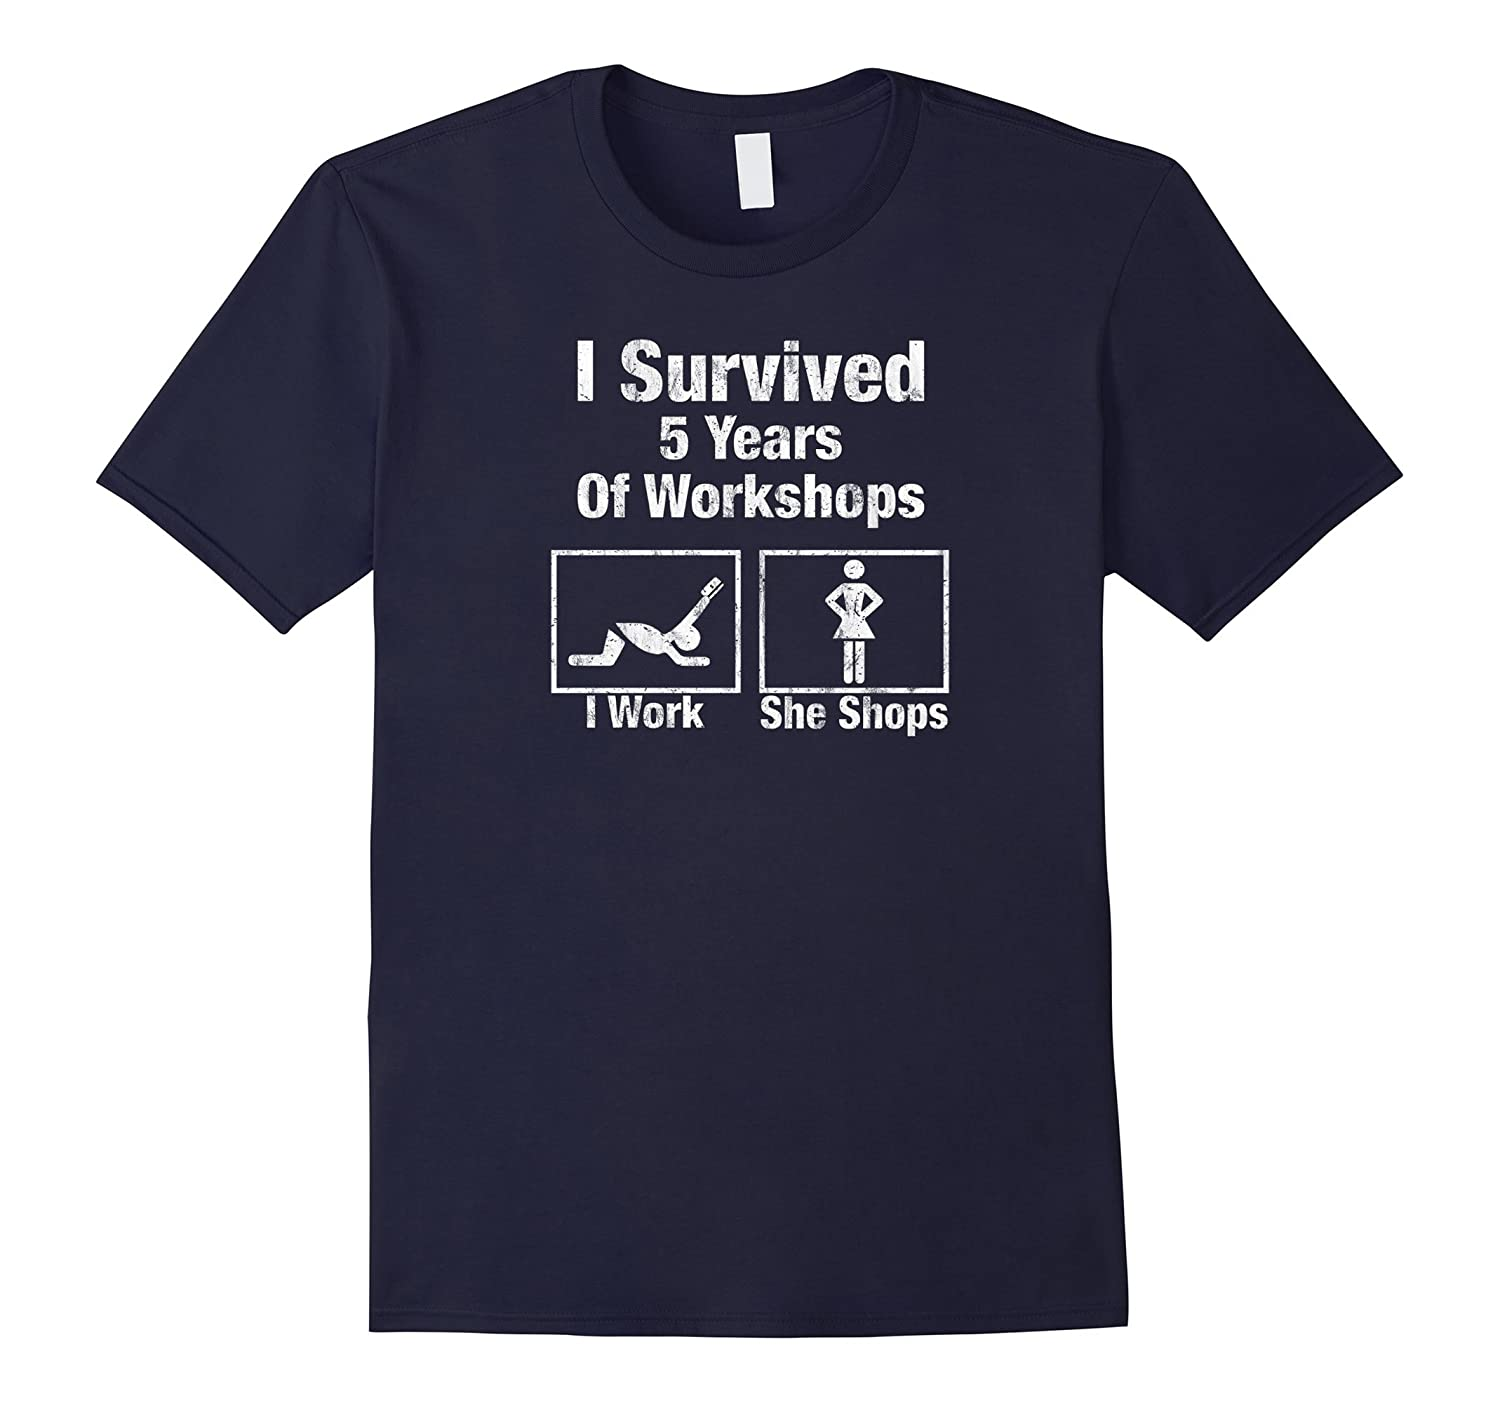 I Survived 5 Years Wedding Anniversary Gift Ideas For Him Anz